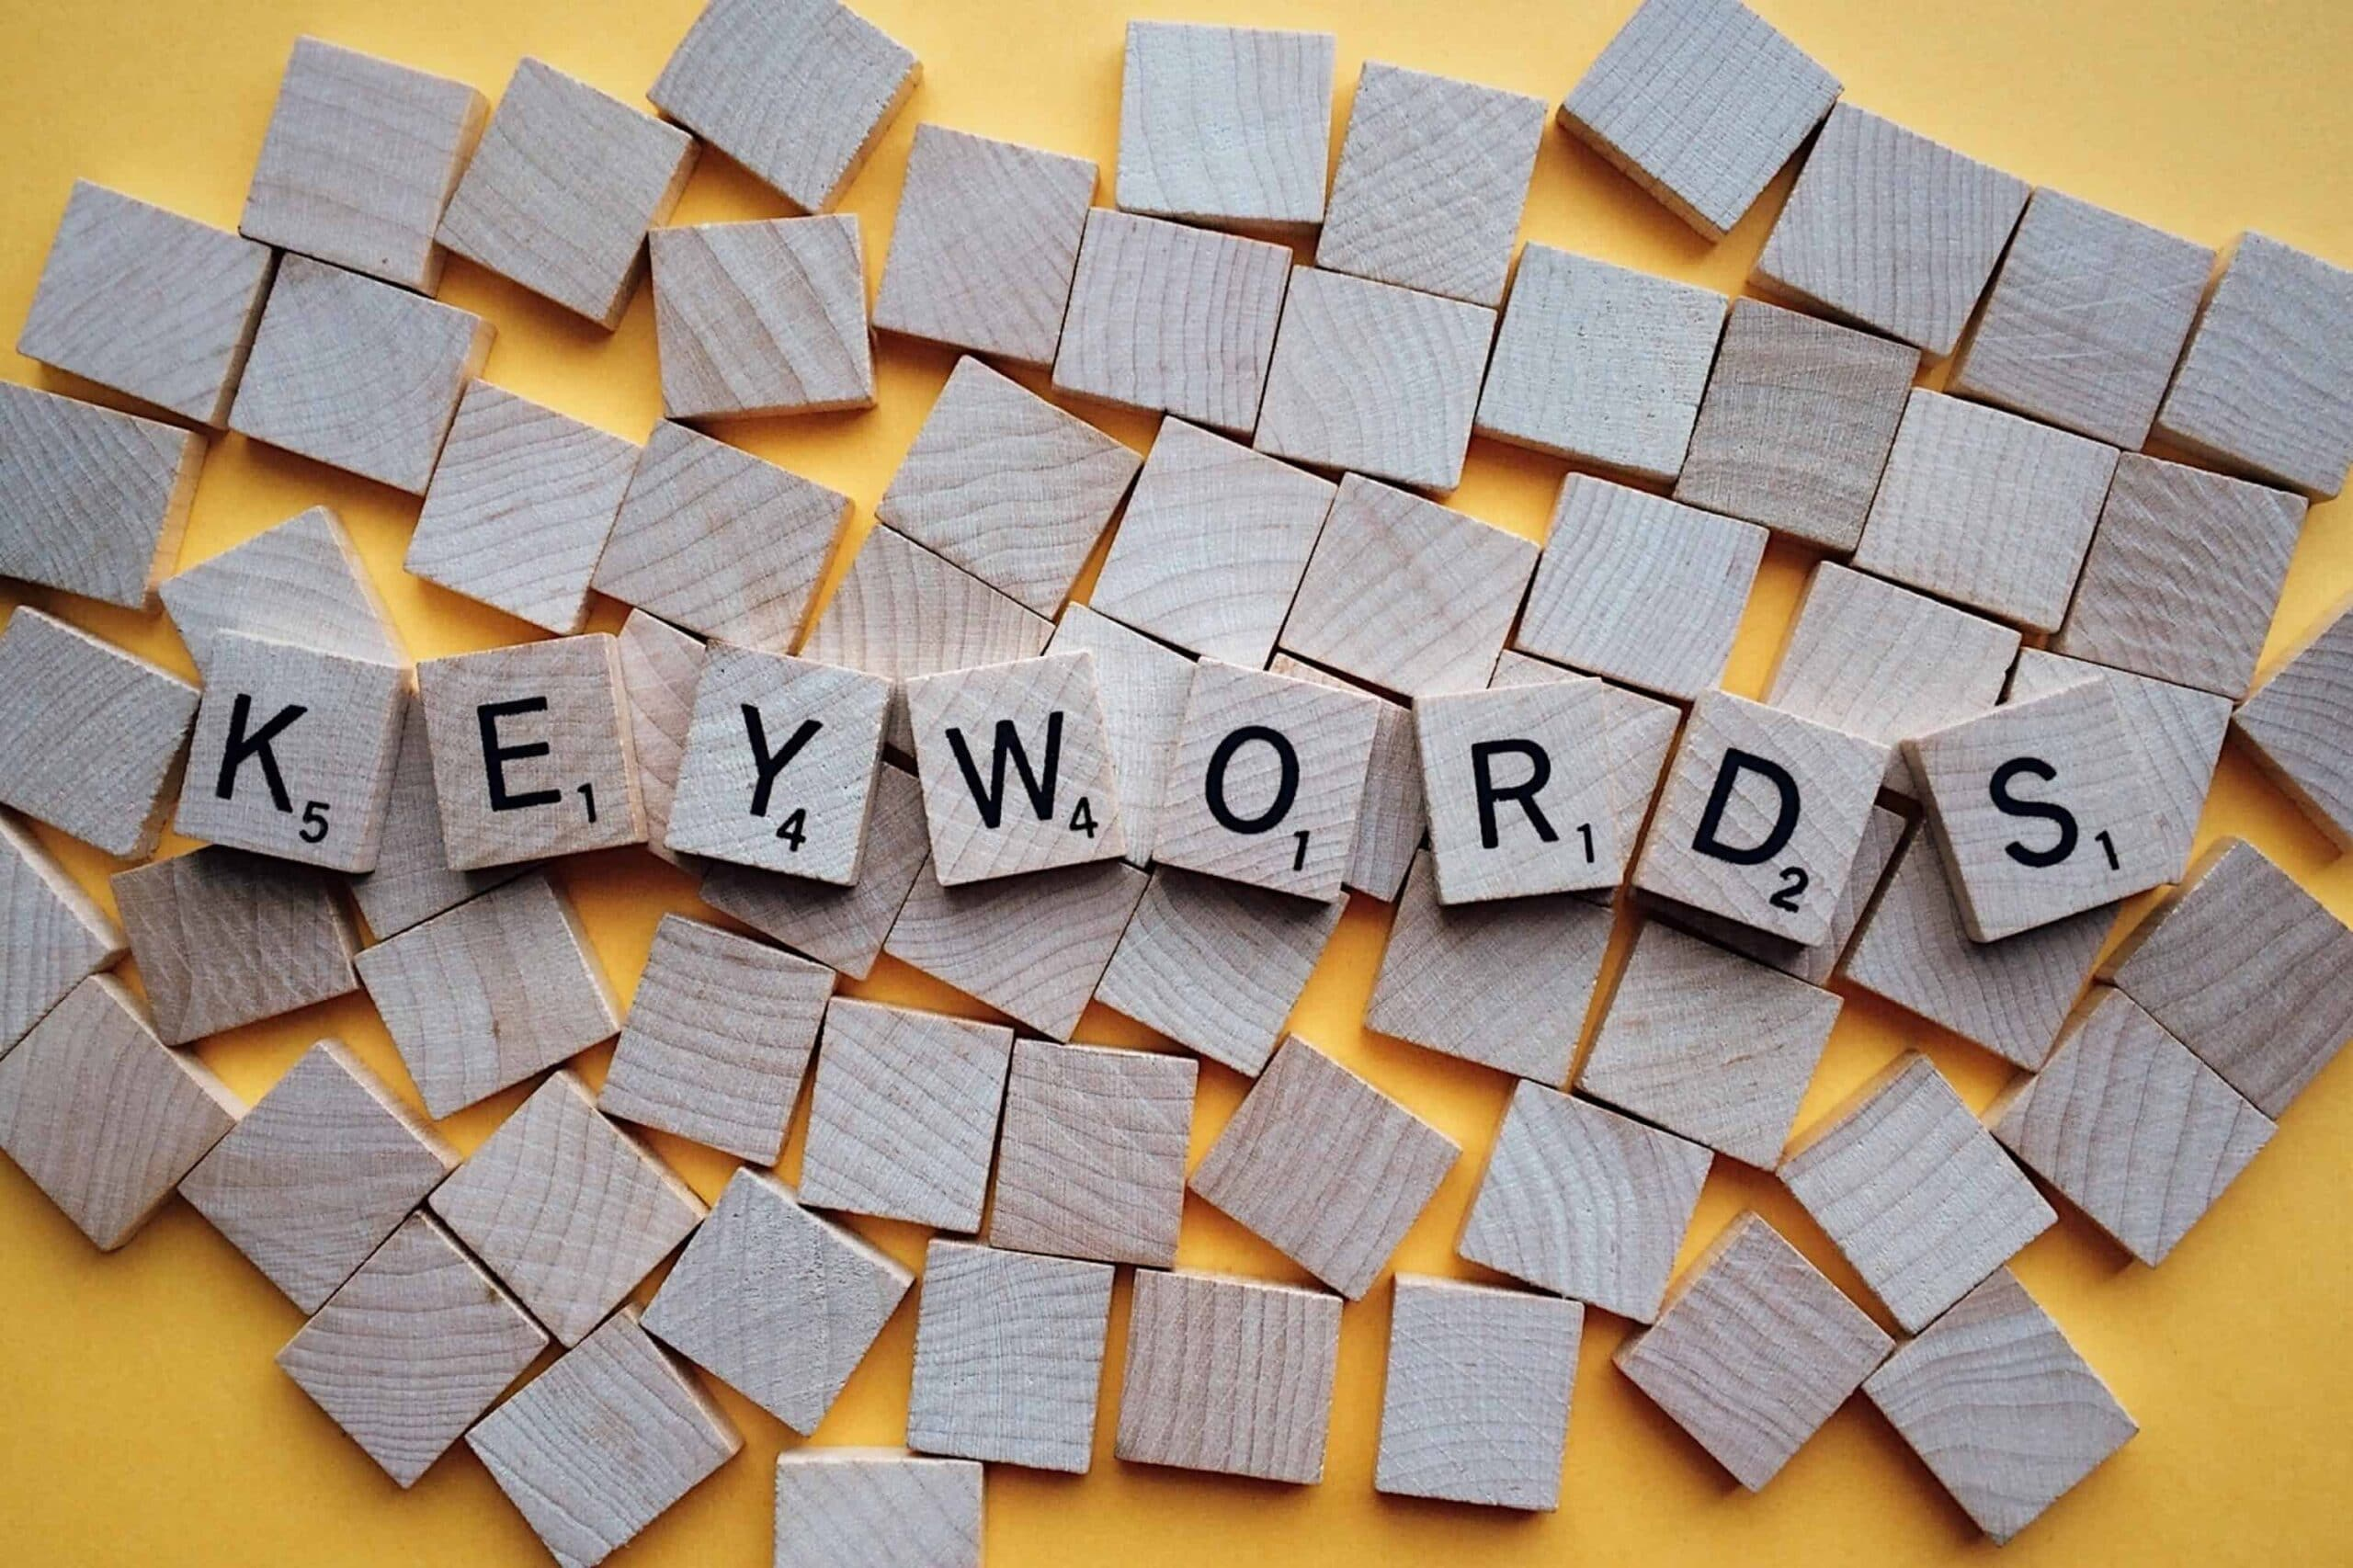 Cannibalization of keywords